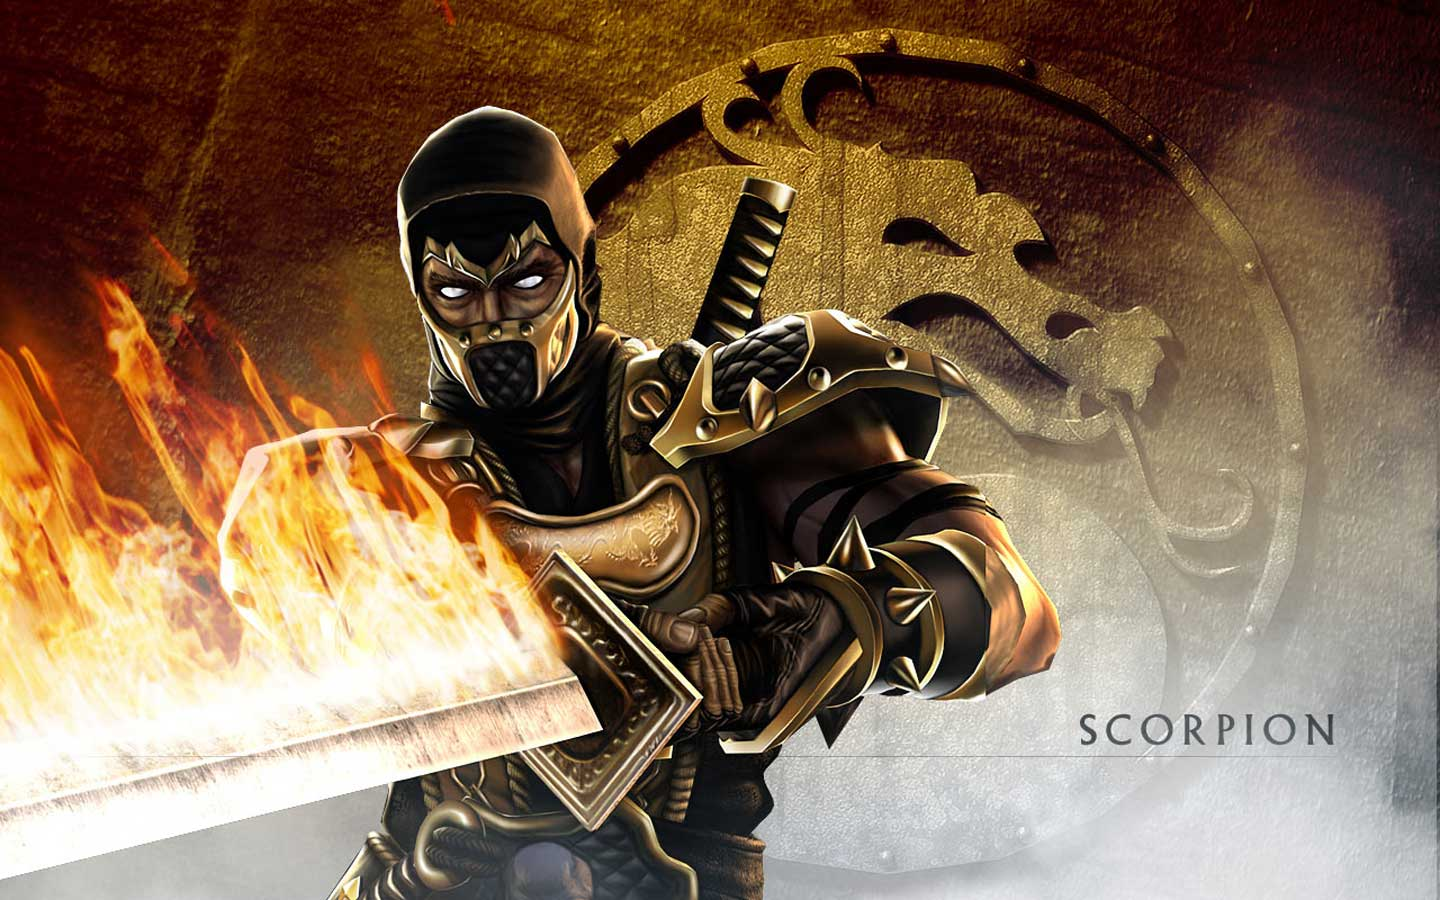 http://rozup.ir/up/gamehouse/Pictures/scorpion_mortal_kombat_deception_wallpaper.jpg